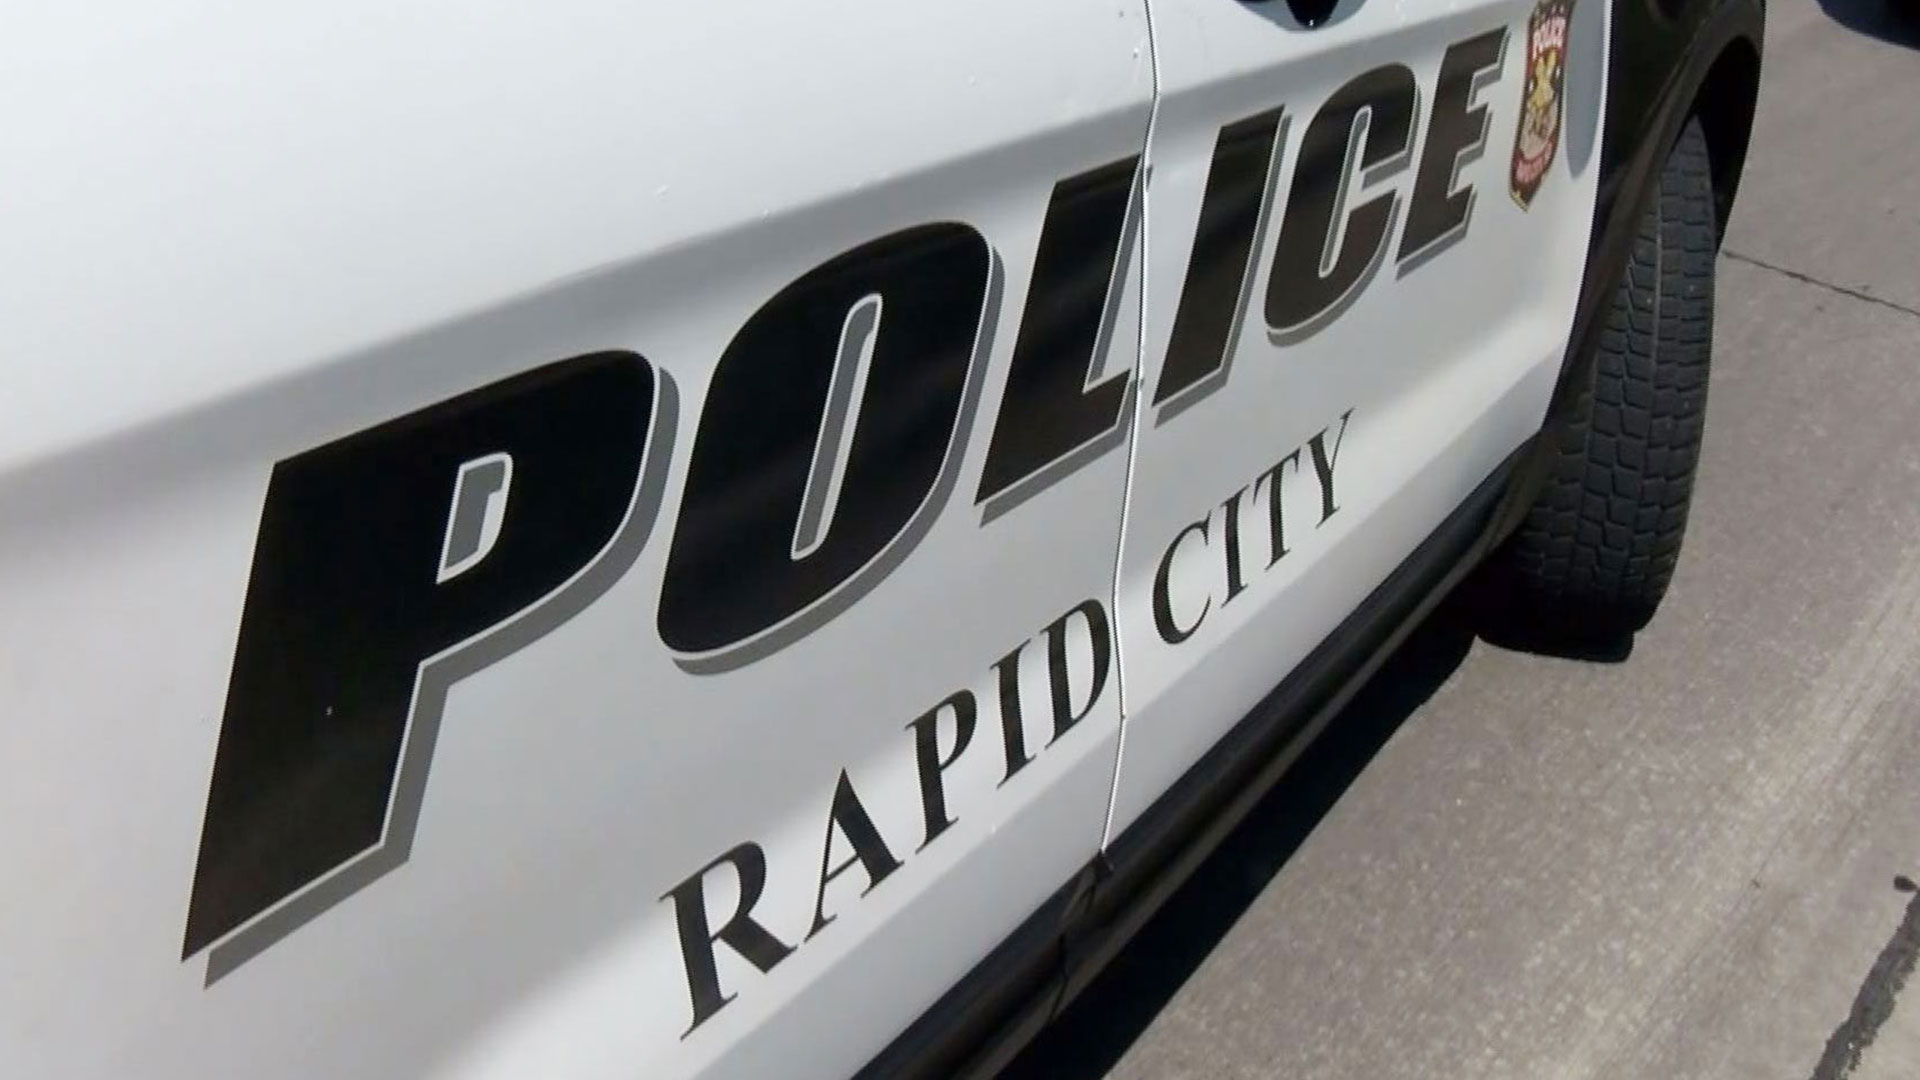 KELO Rapid City Police